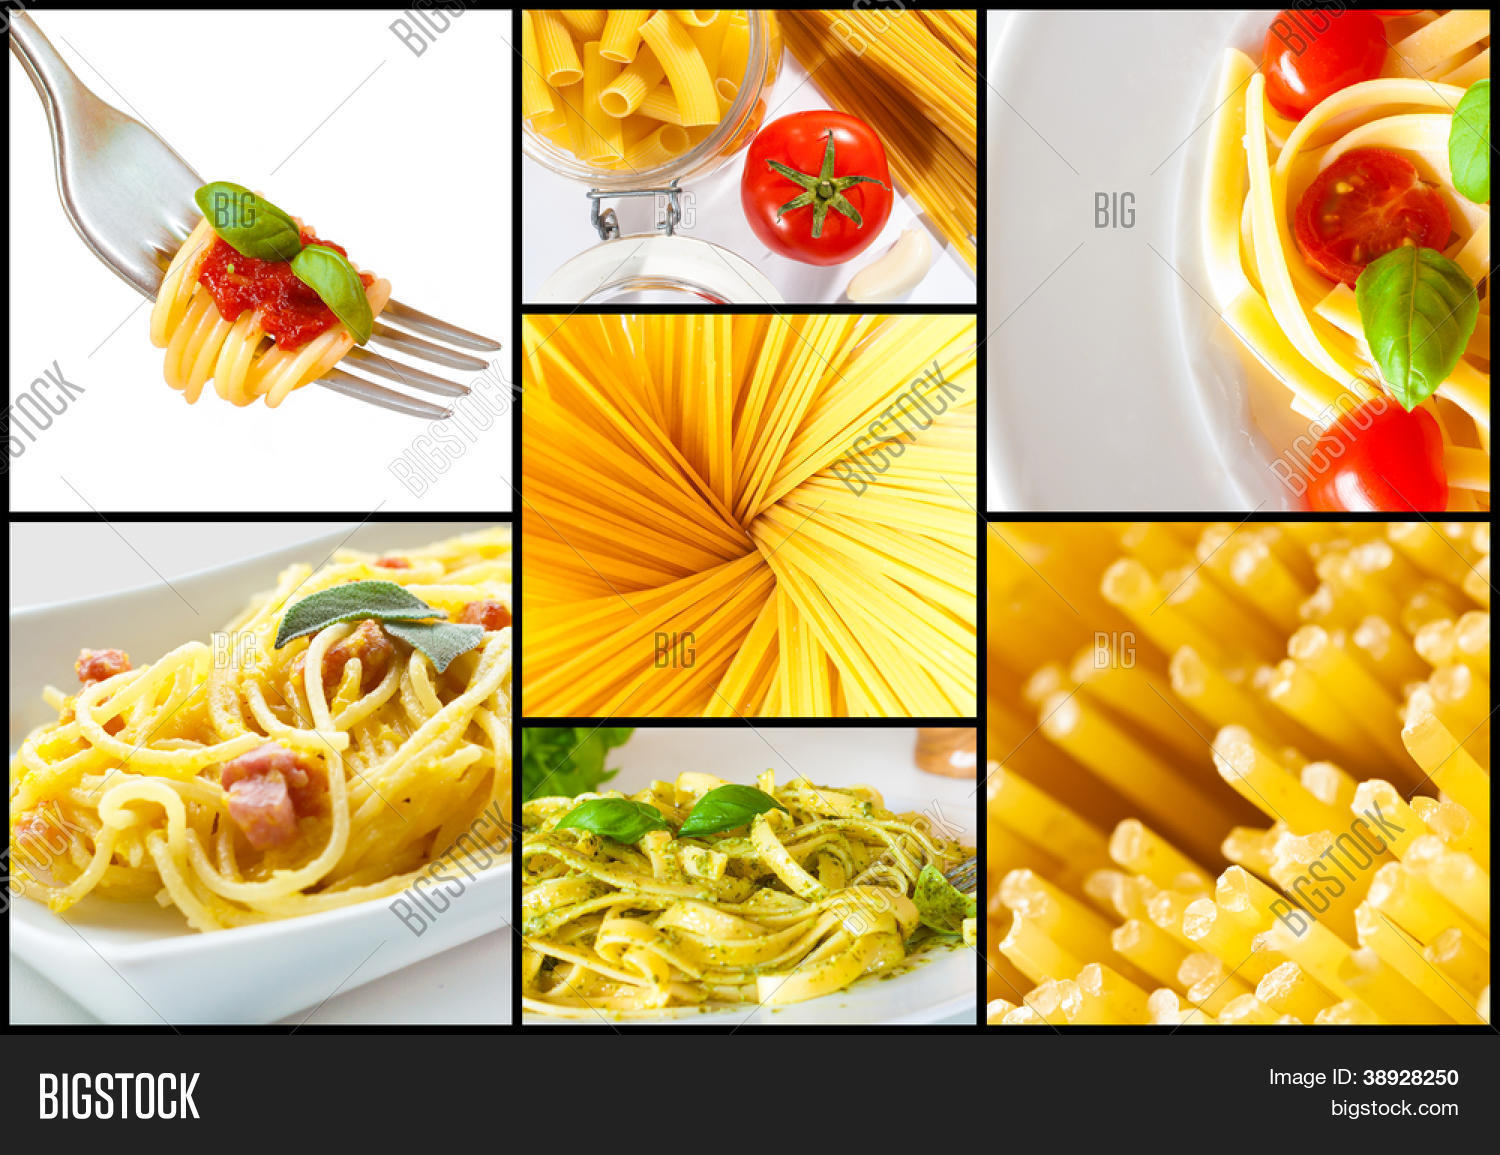 Image Preview